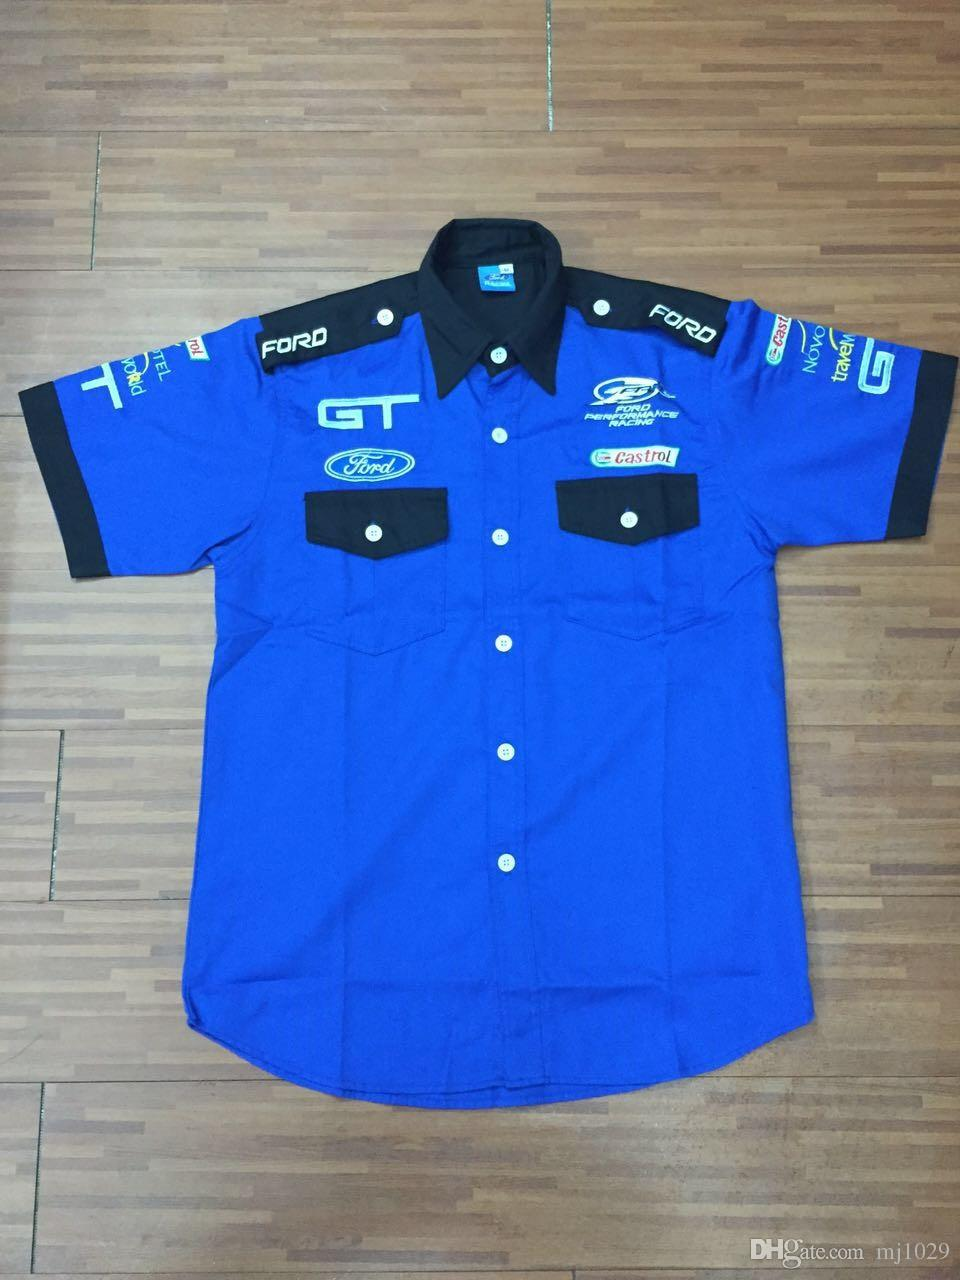 Logo embroidery for ford gt performance racing team shirts